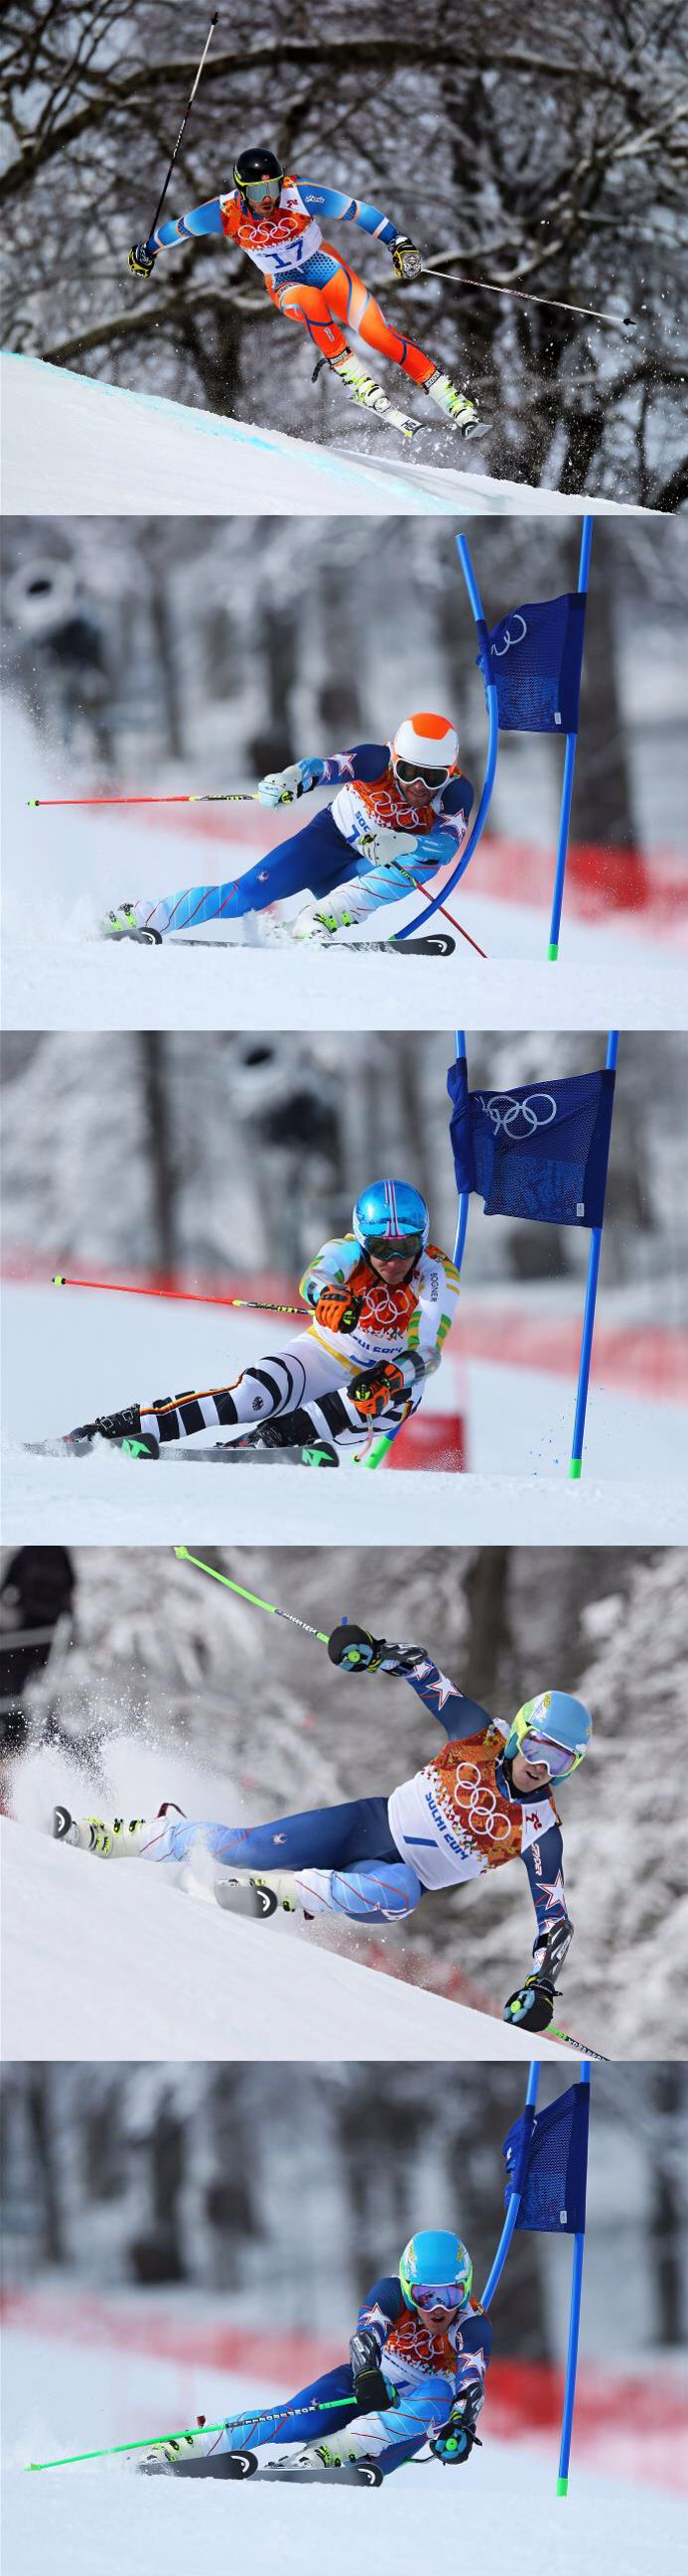 Alpine Skiing Men's Giant Slalom - my favorite alpine discipline